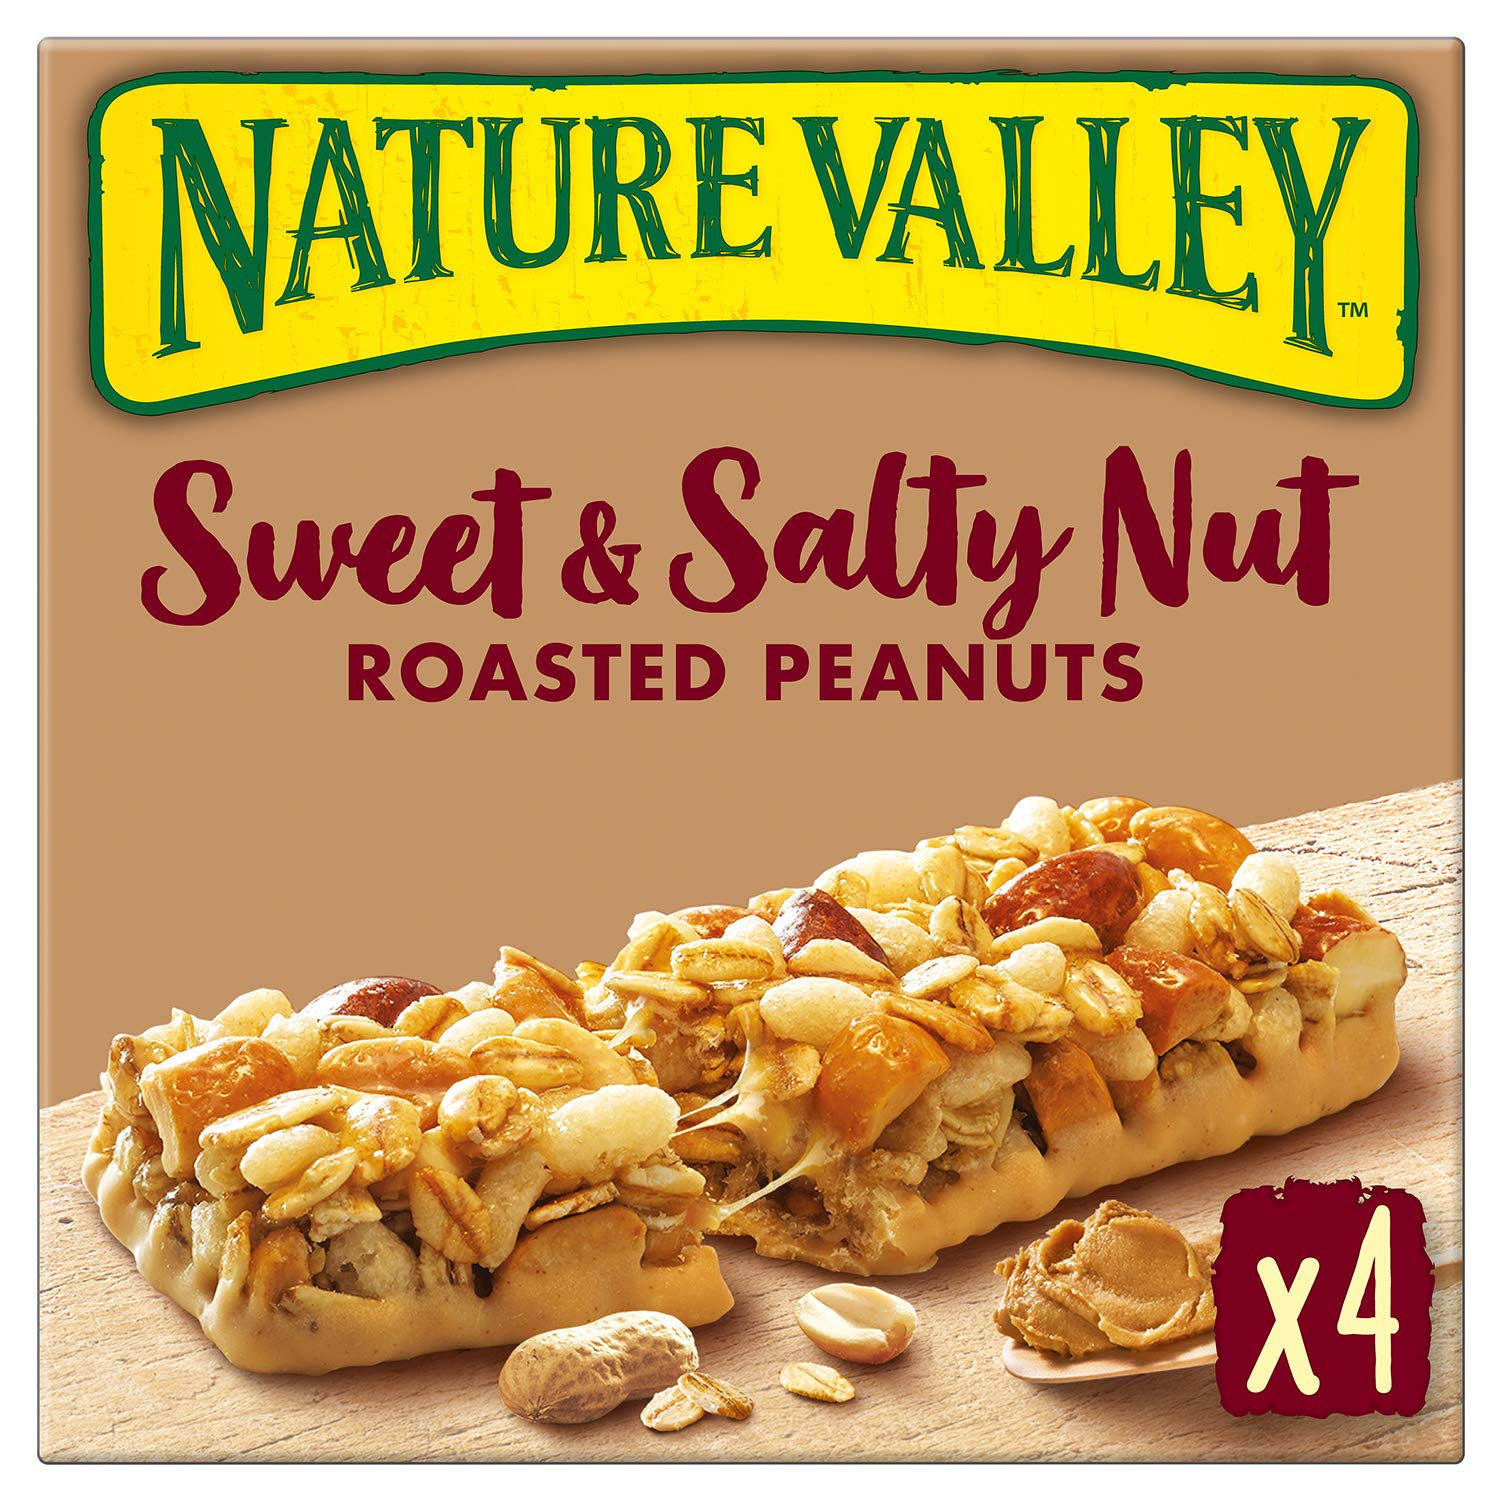 Nature Valley Sweet & Salty Nut Roasted Peanuts Cereal Bars, 120 g, 7006301043